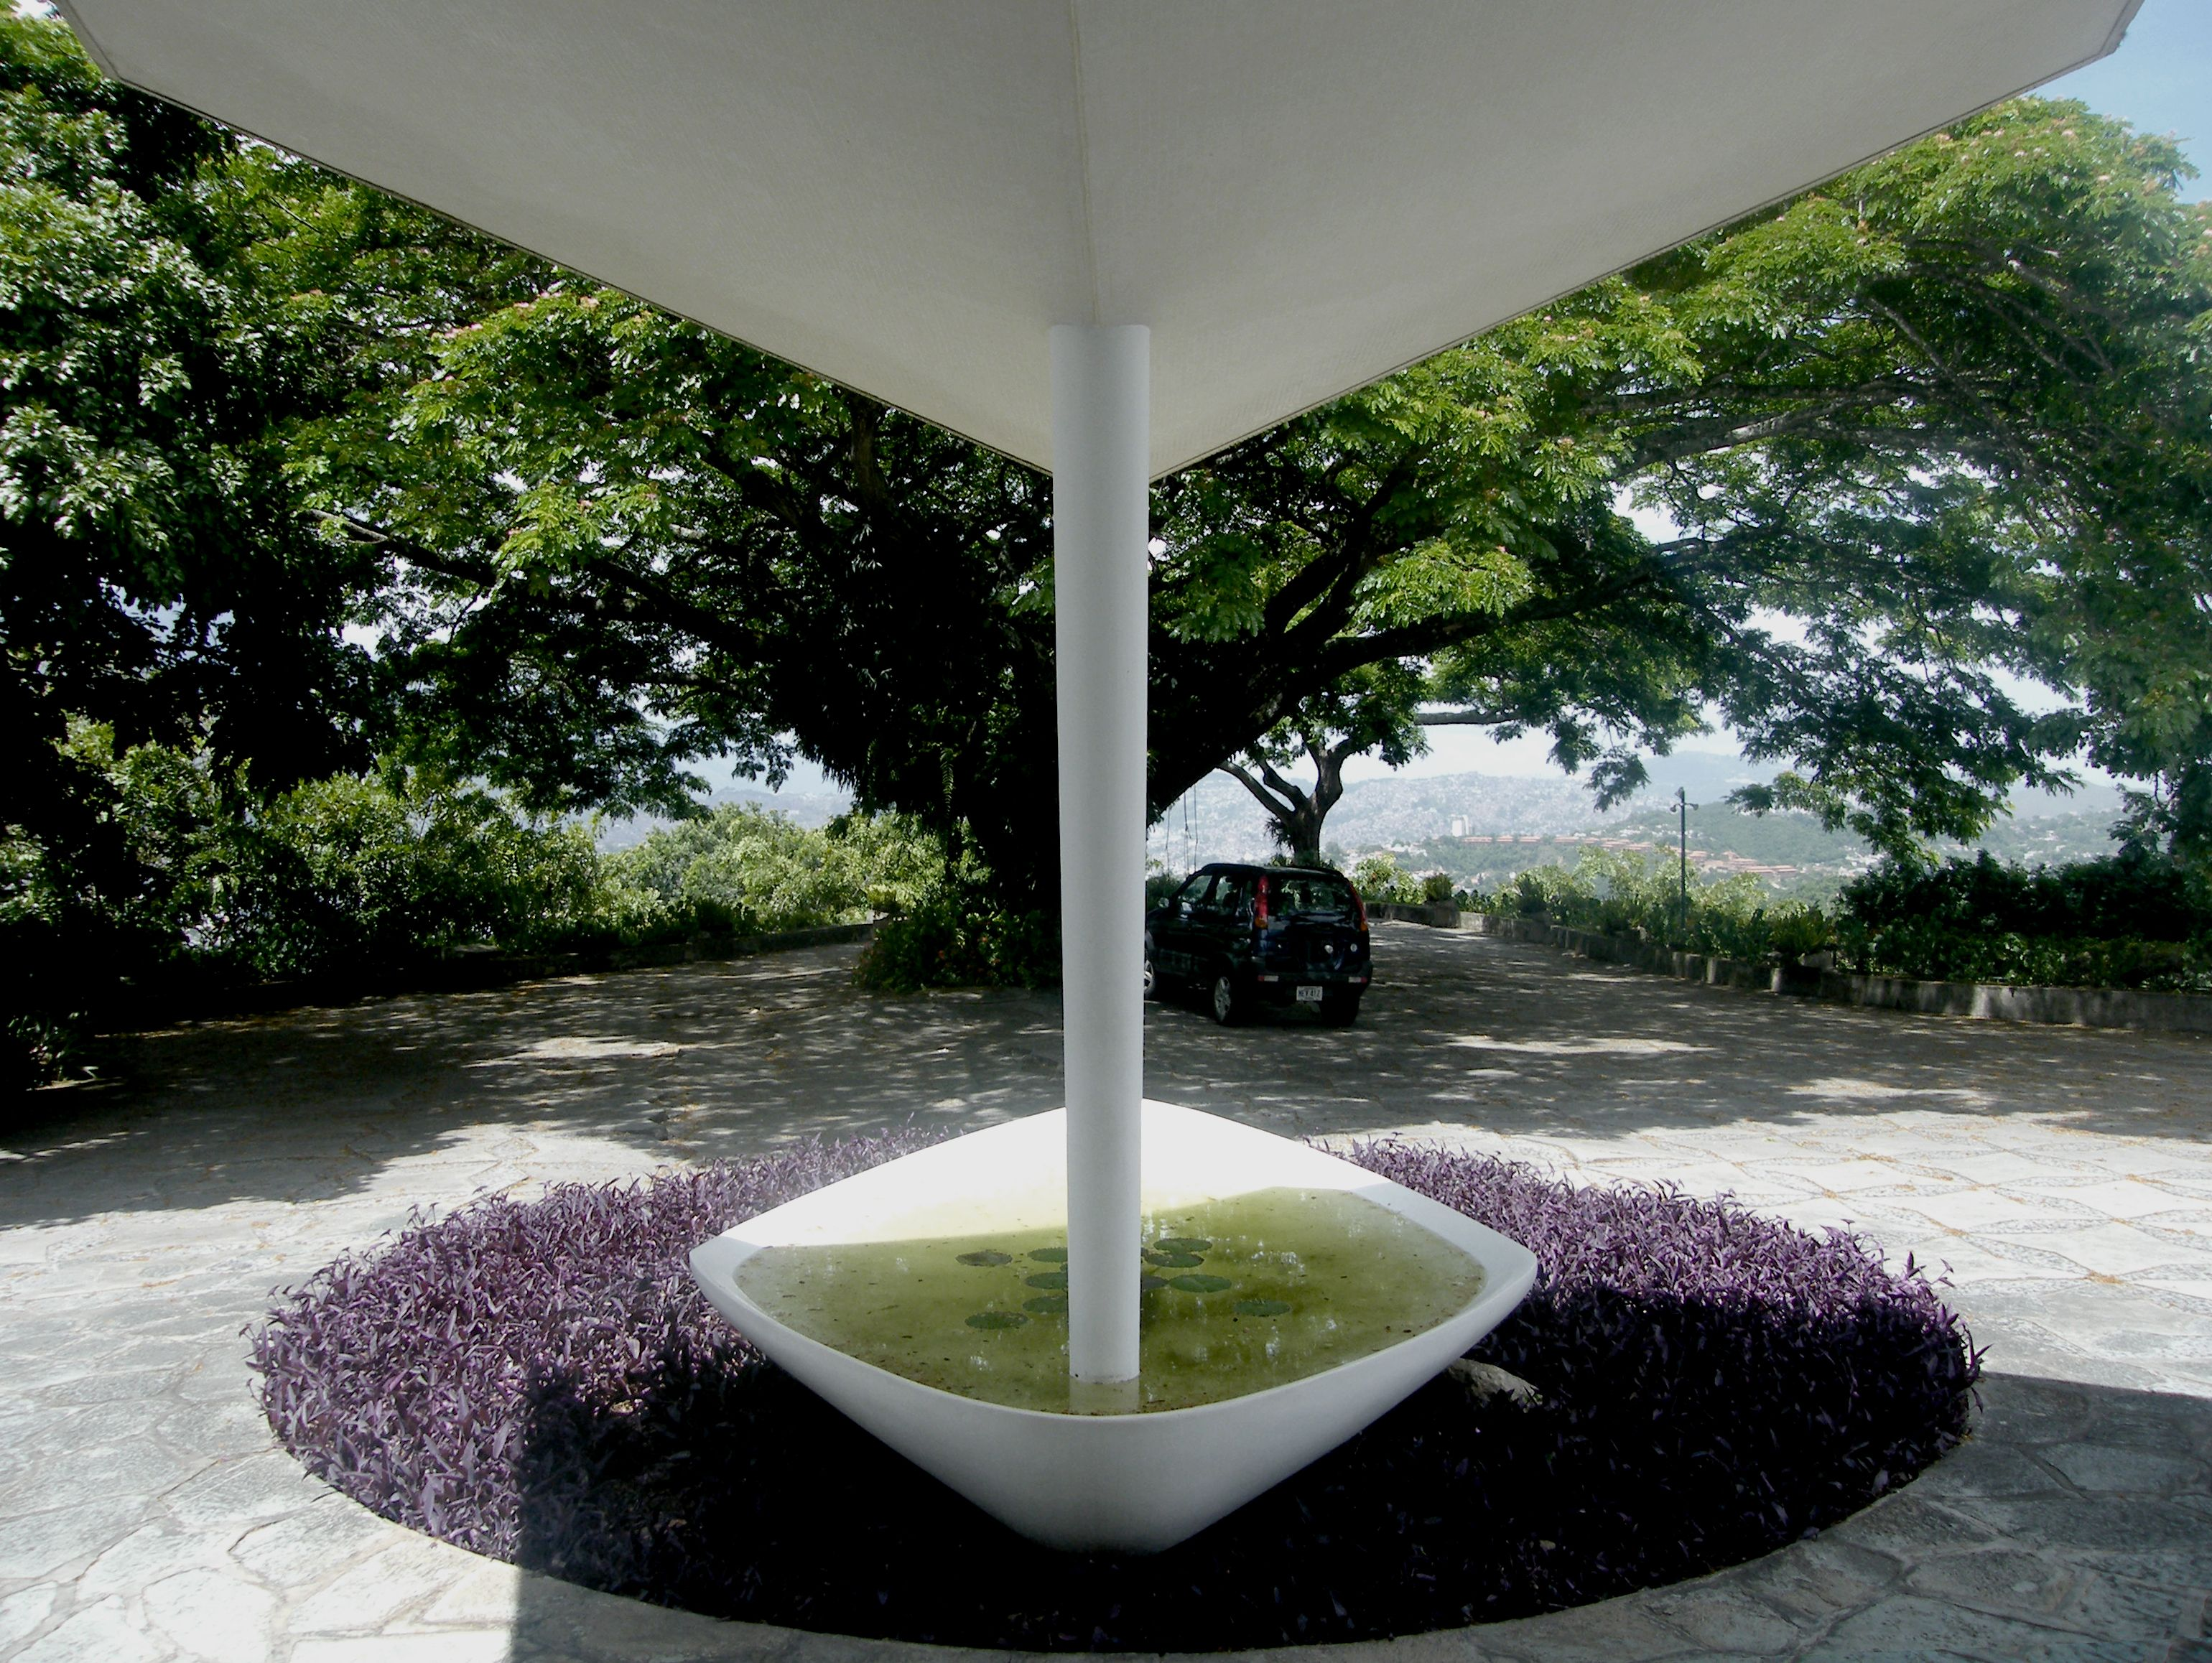 the entrance to Villa Planchart in Caracas by Gio Ponti